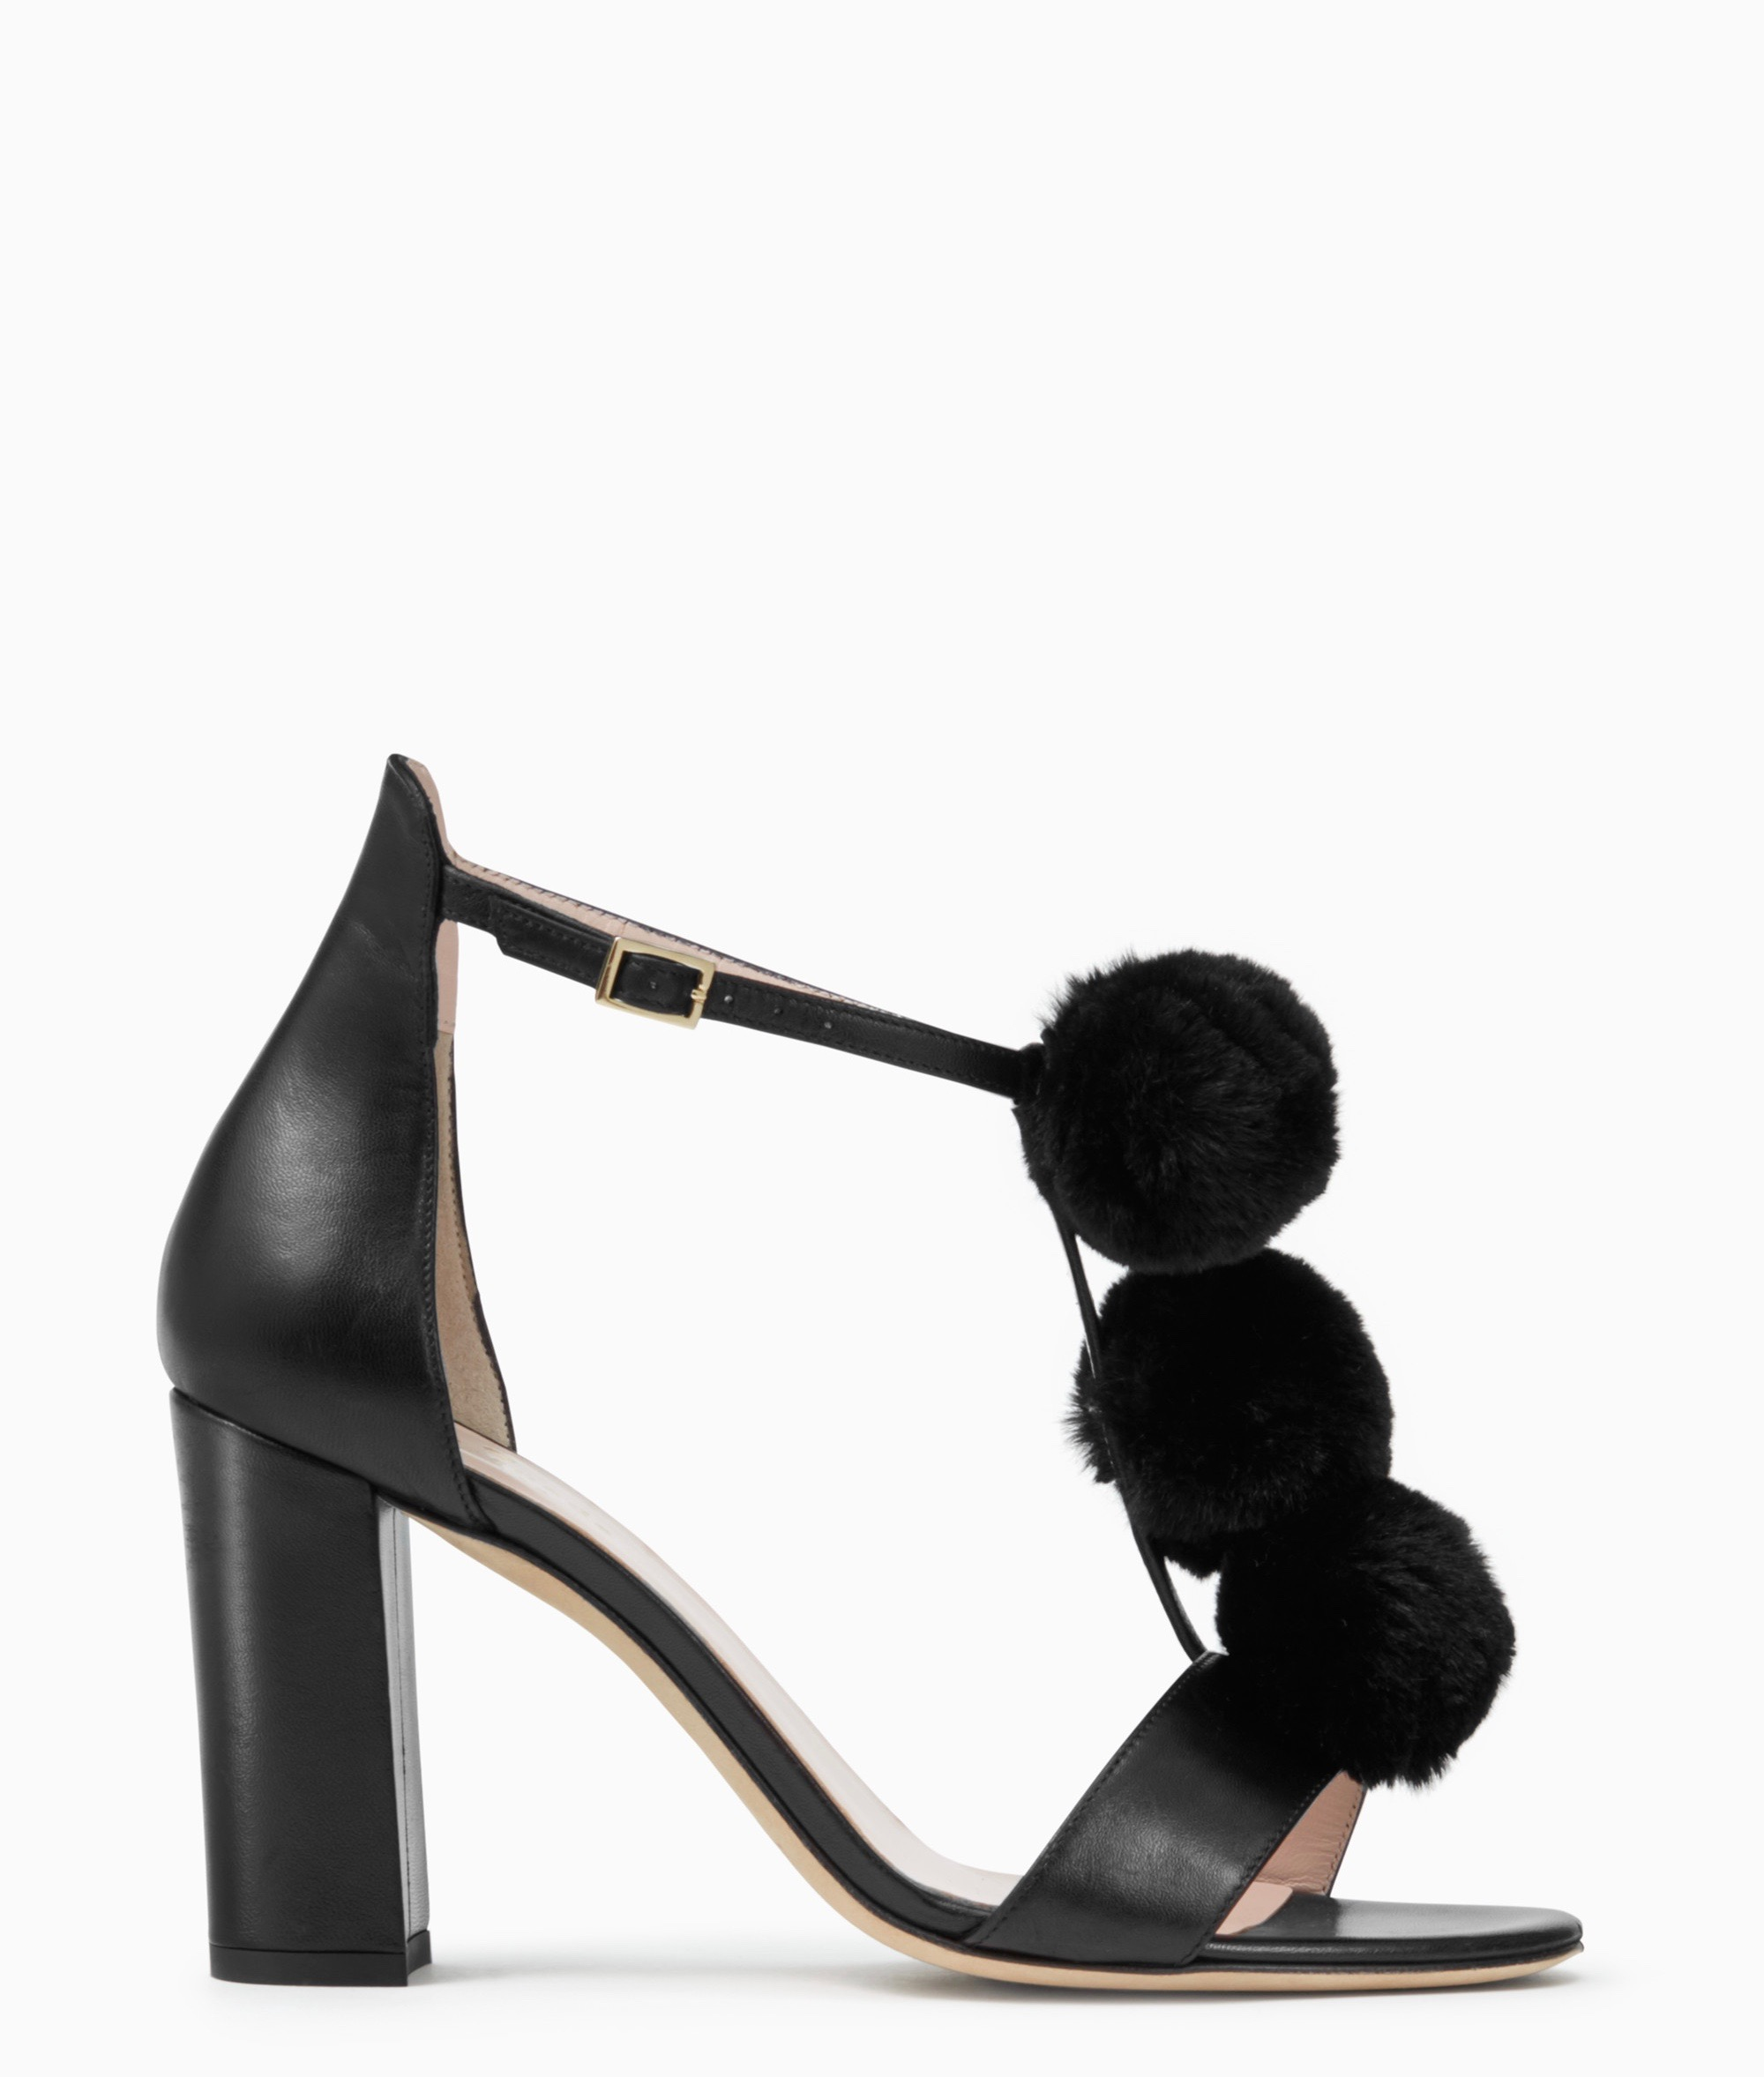 india-heels-kate-spade-new-york-black-pom-pom